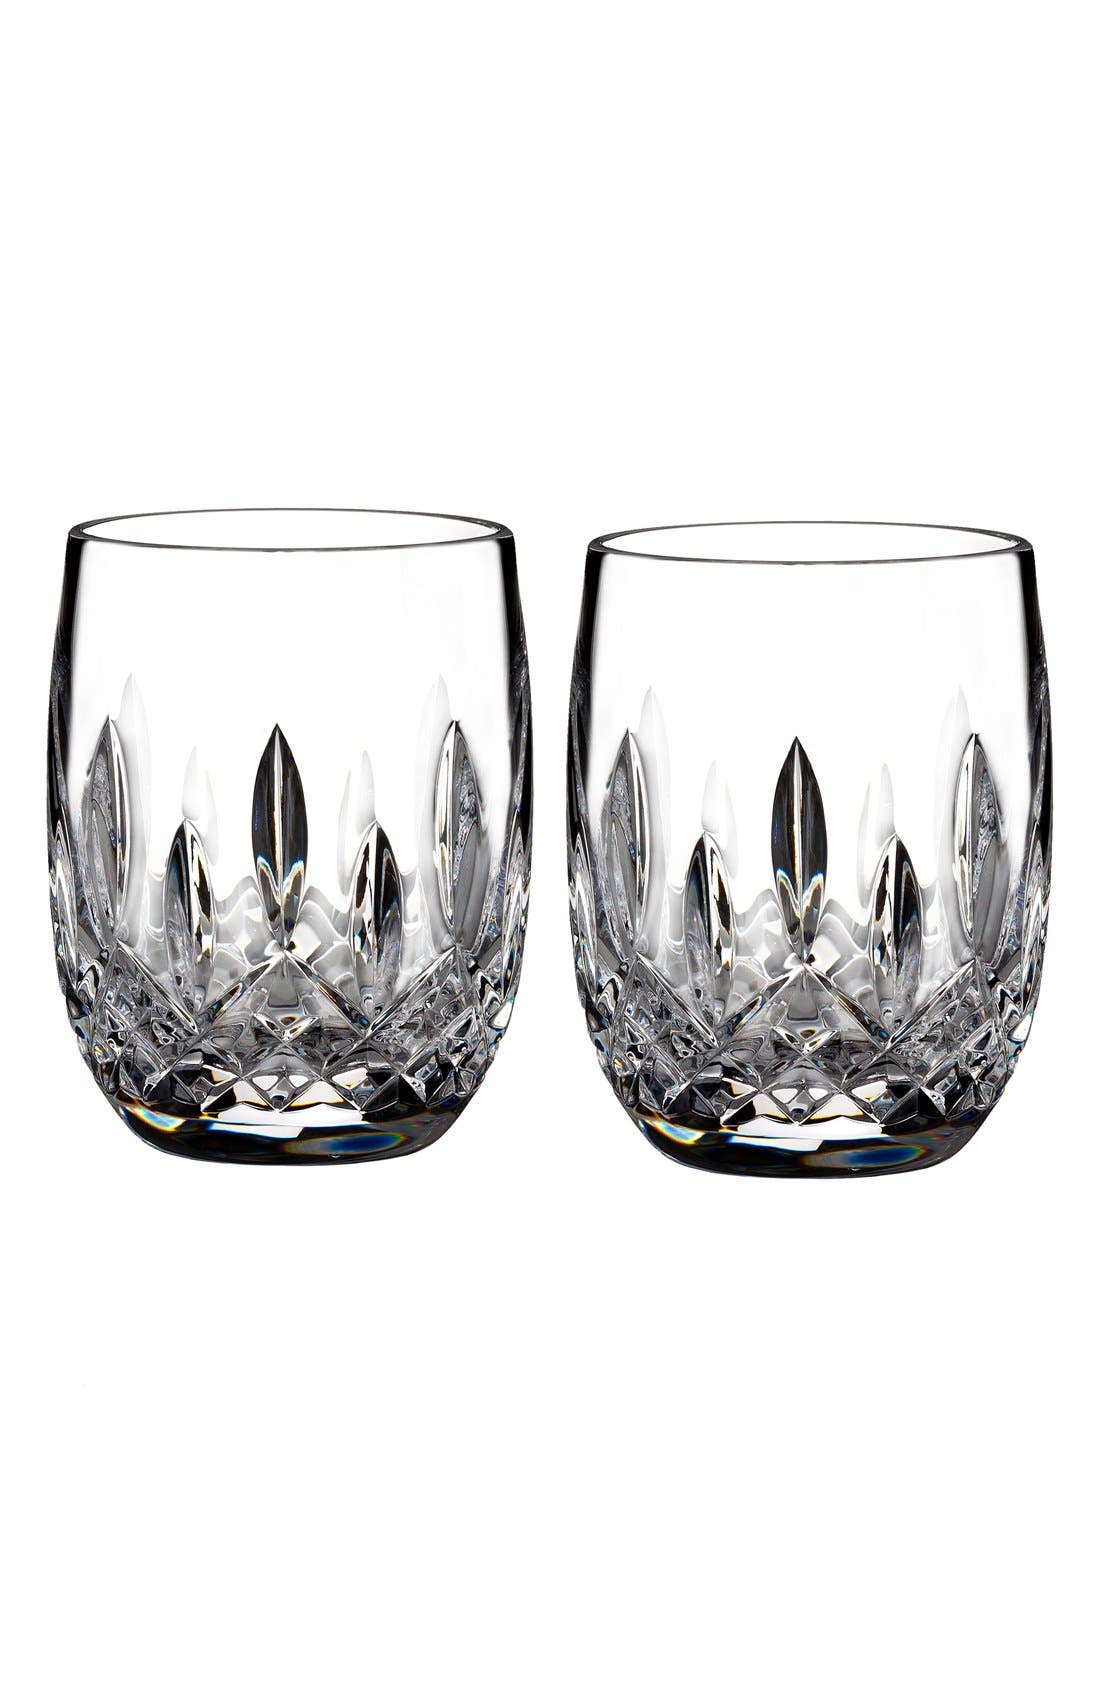 Main Image - Waterford 'Lismore' Lead Crystal Rounded Tumblers (Set of 2)